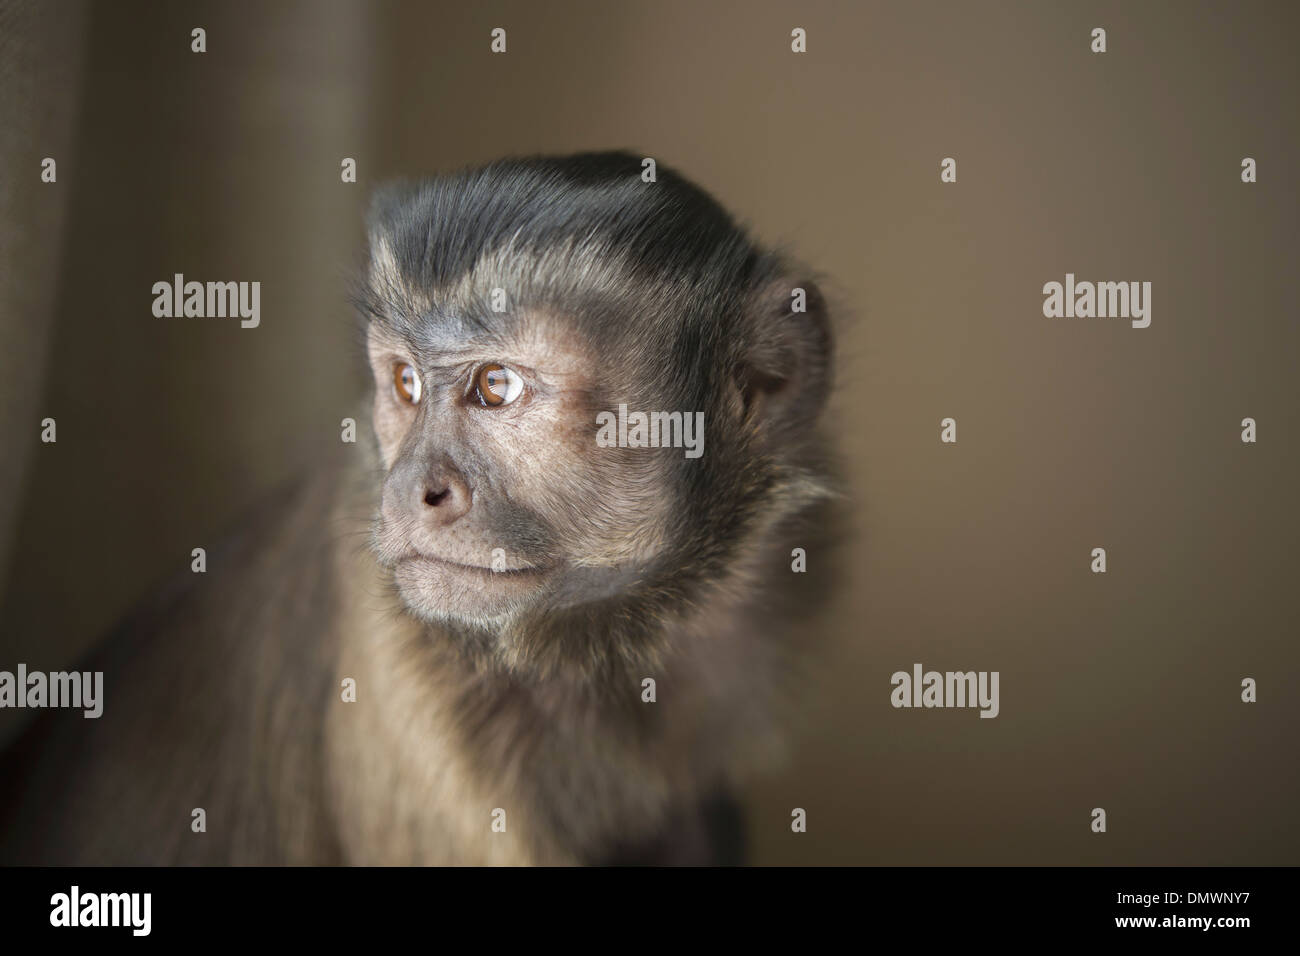 A capuchin monkey seated head and shoulders. - Stock Image